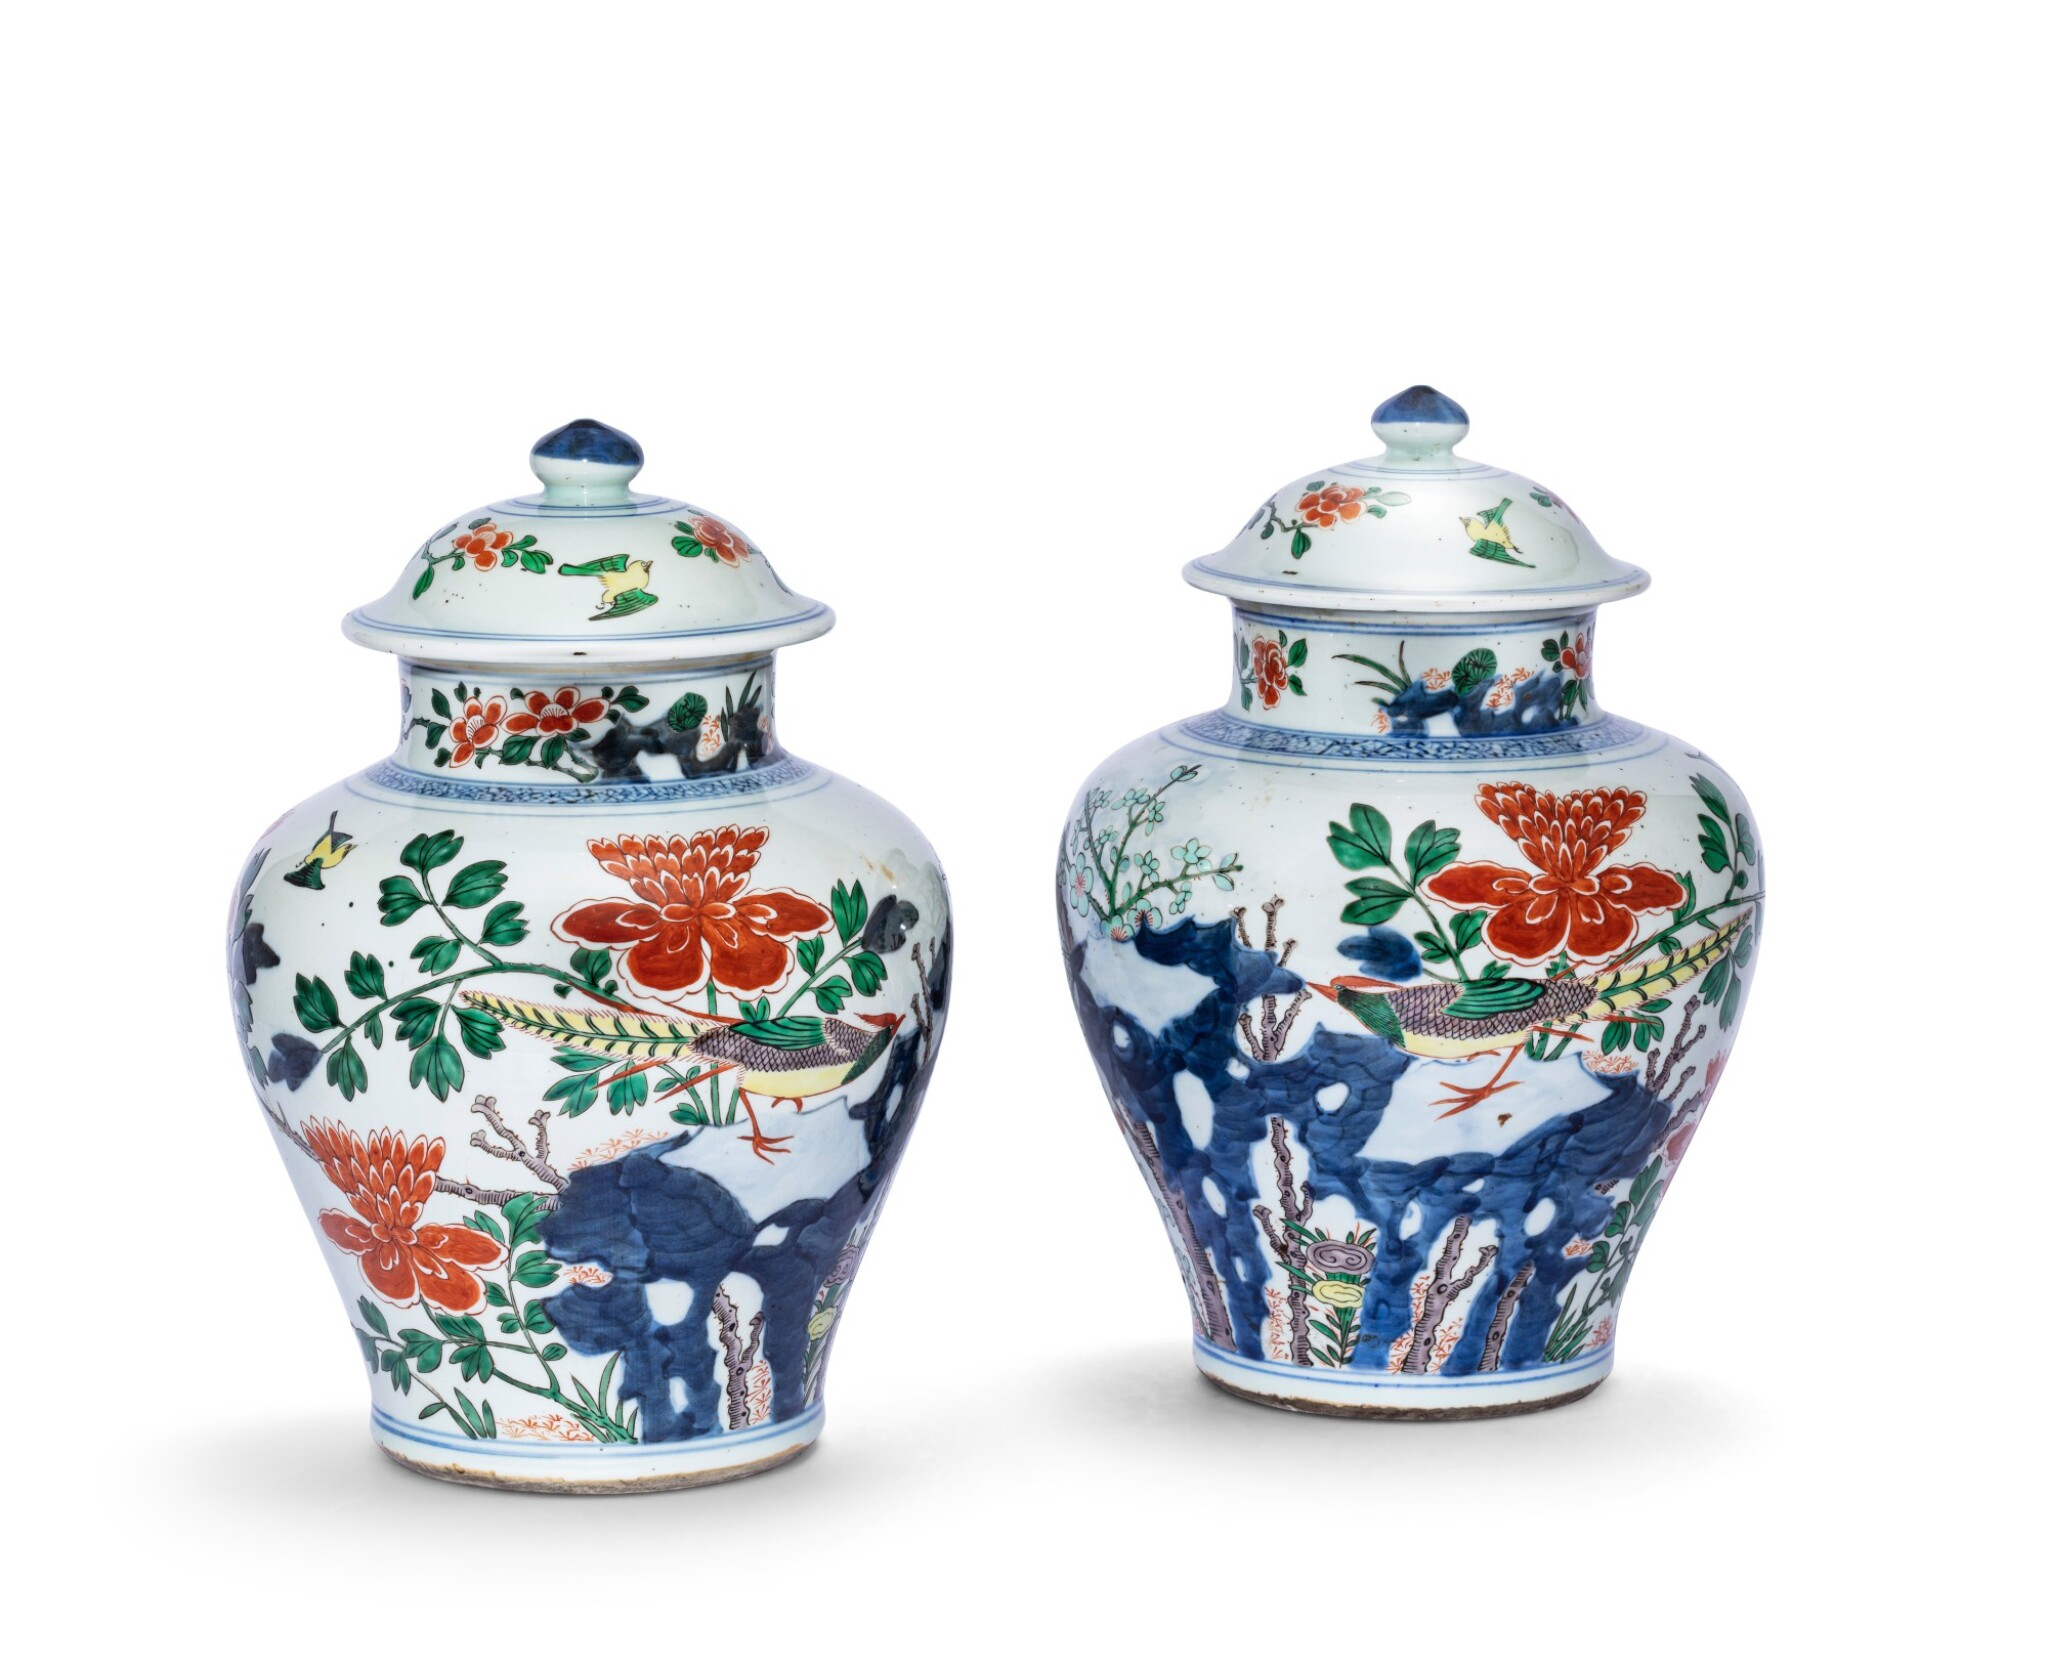 View 1 of Lot 157. Paire de vases couverts en porcelaine wucai Dynastie Qing, XIXE siècle | 清十九世紀 五彩花鳥紋將軍蓋罐一對 | A pair of wucai jars and covers, Qing Dynasty, 19th century.